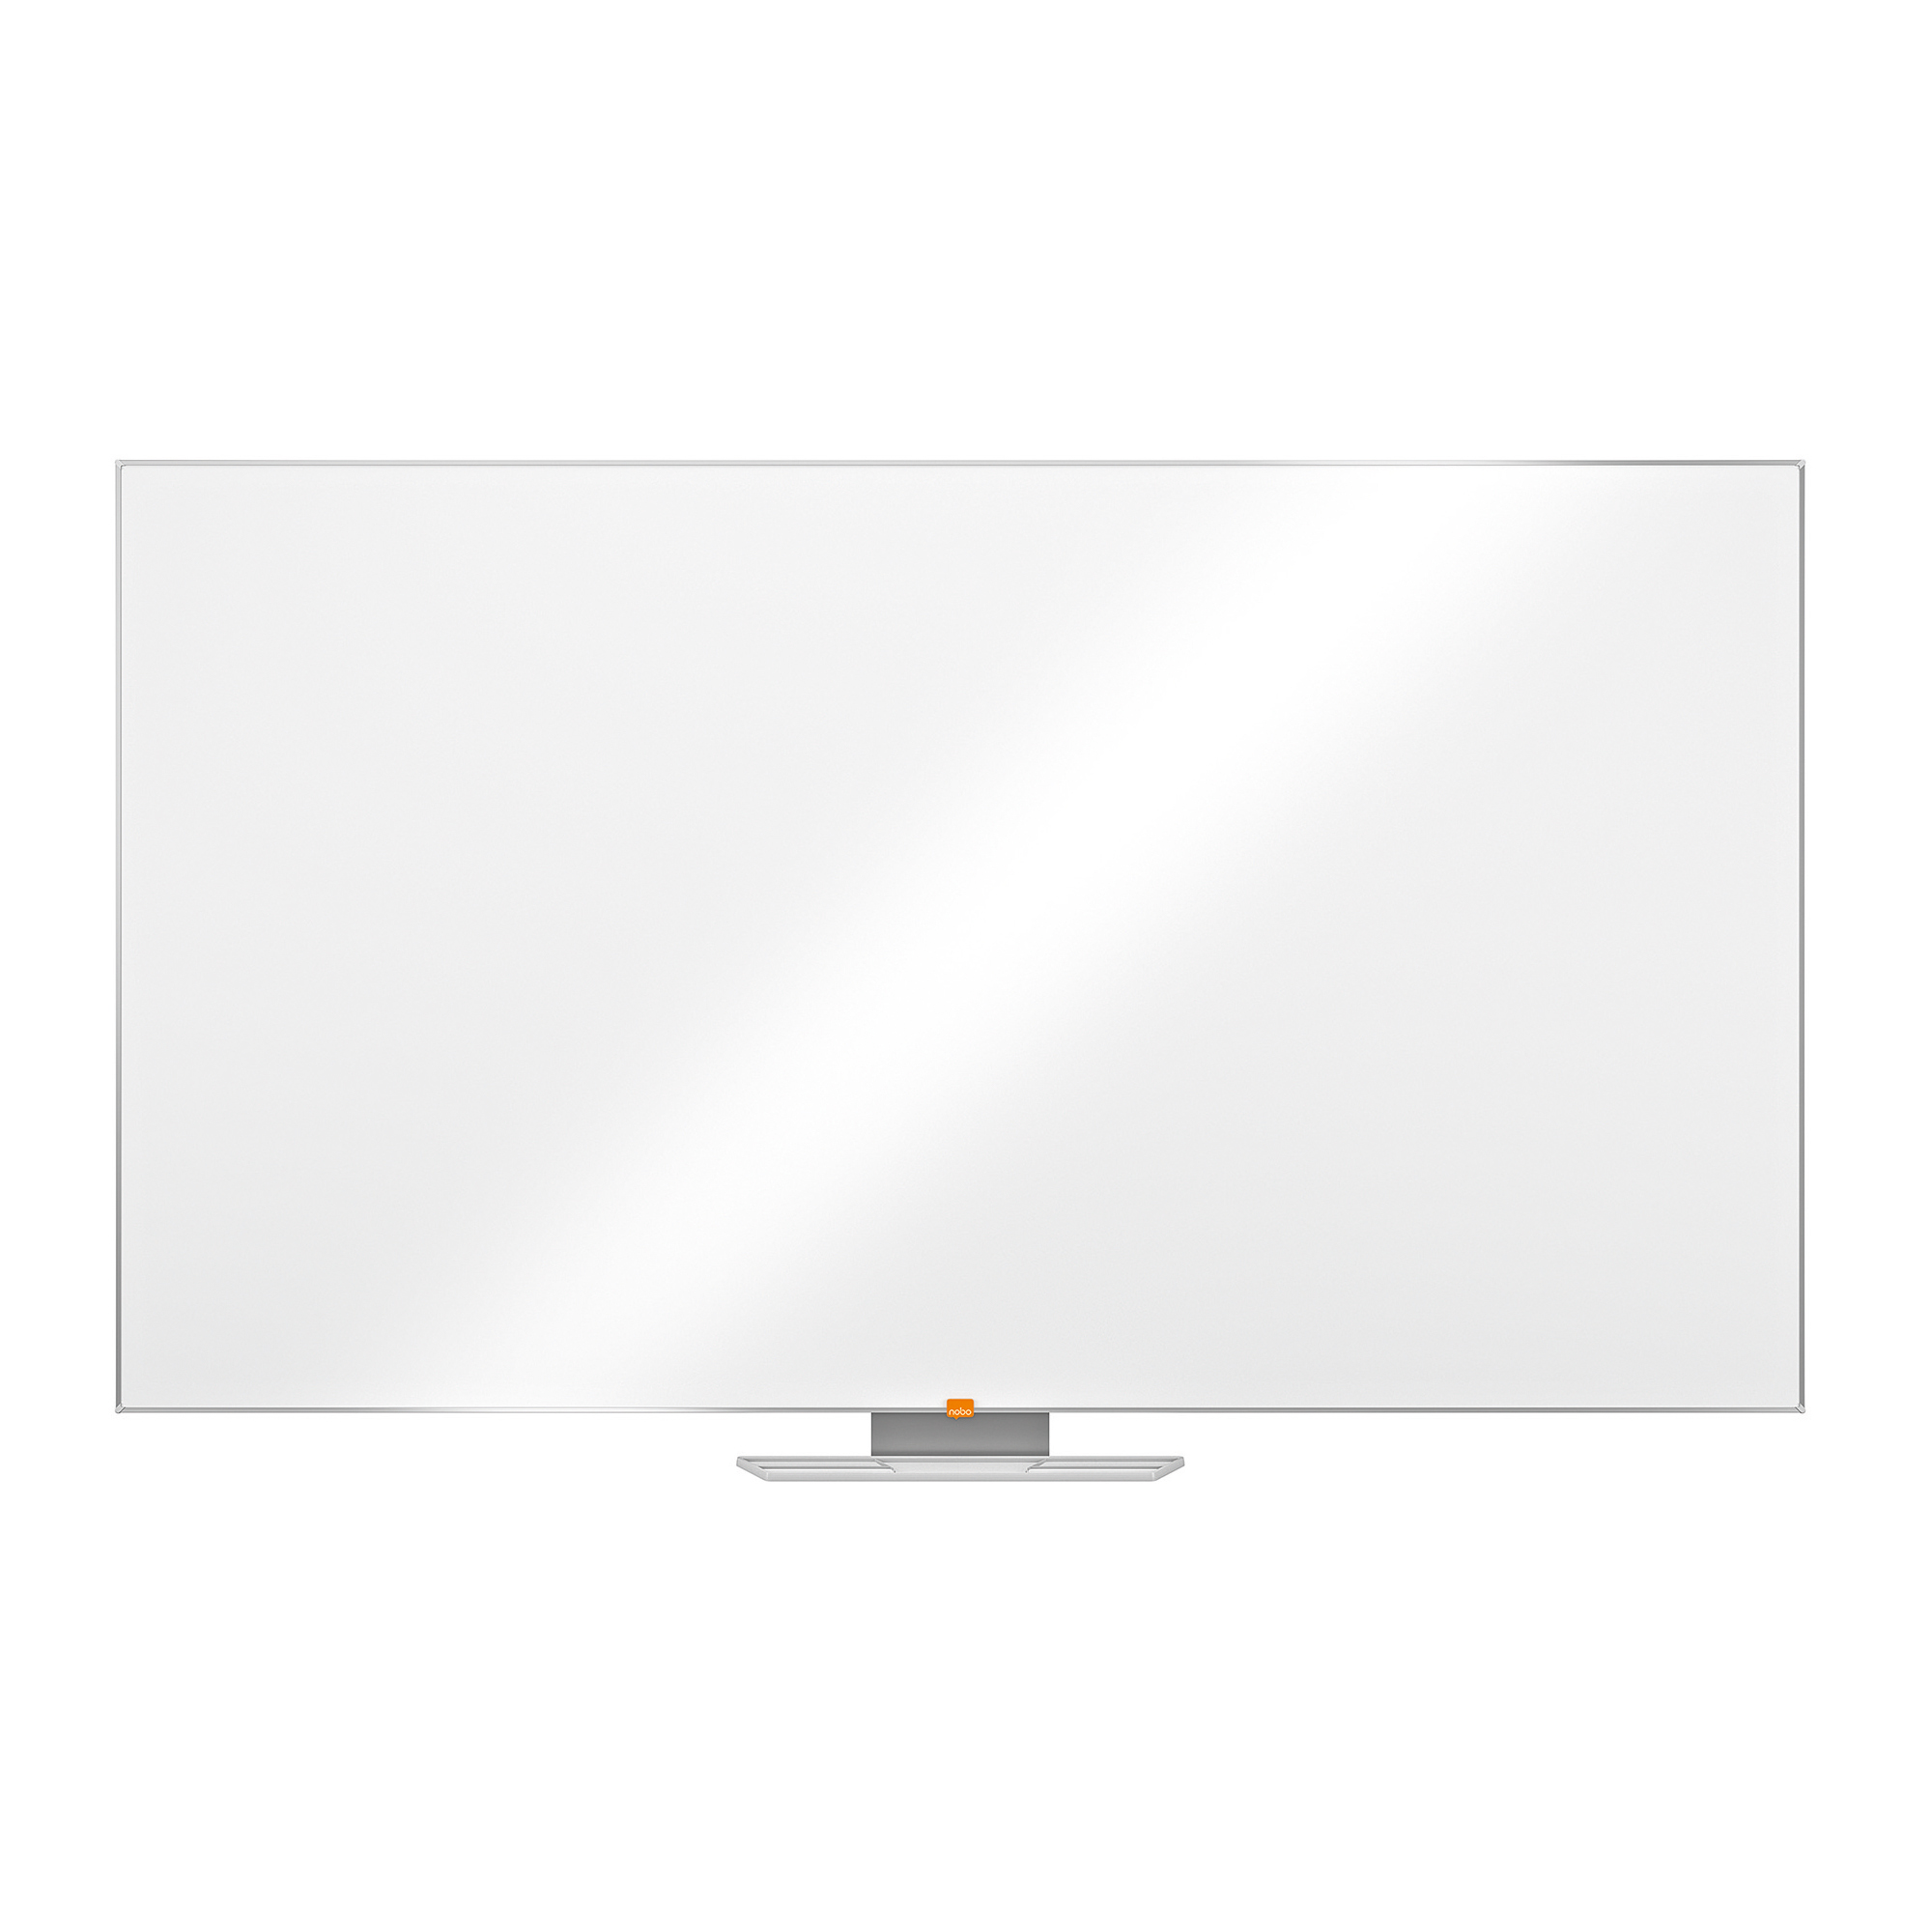 Nobo Whiteboard Widescreen 55in Nano Clean Magnetic 1071x1894mm Ref 1905300 COMPETITION Apr-Jun 19